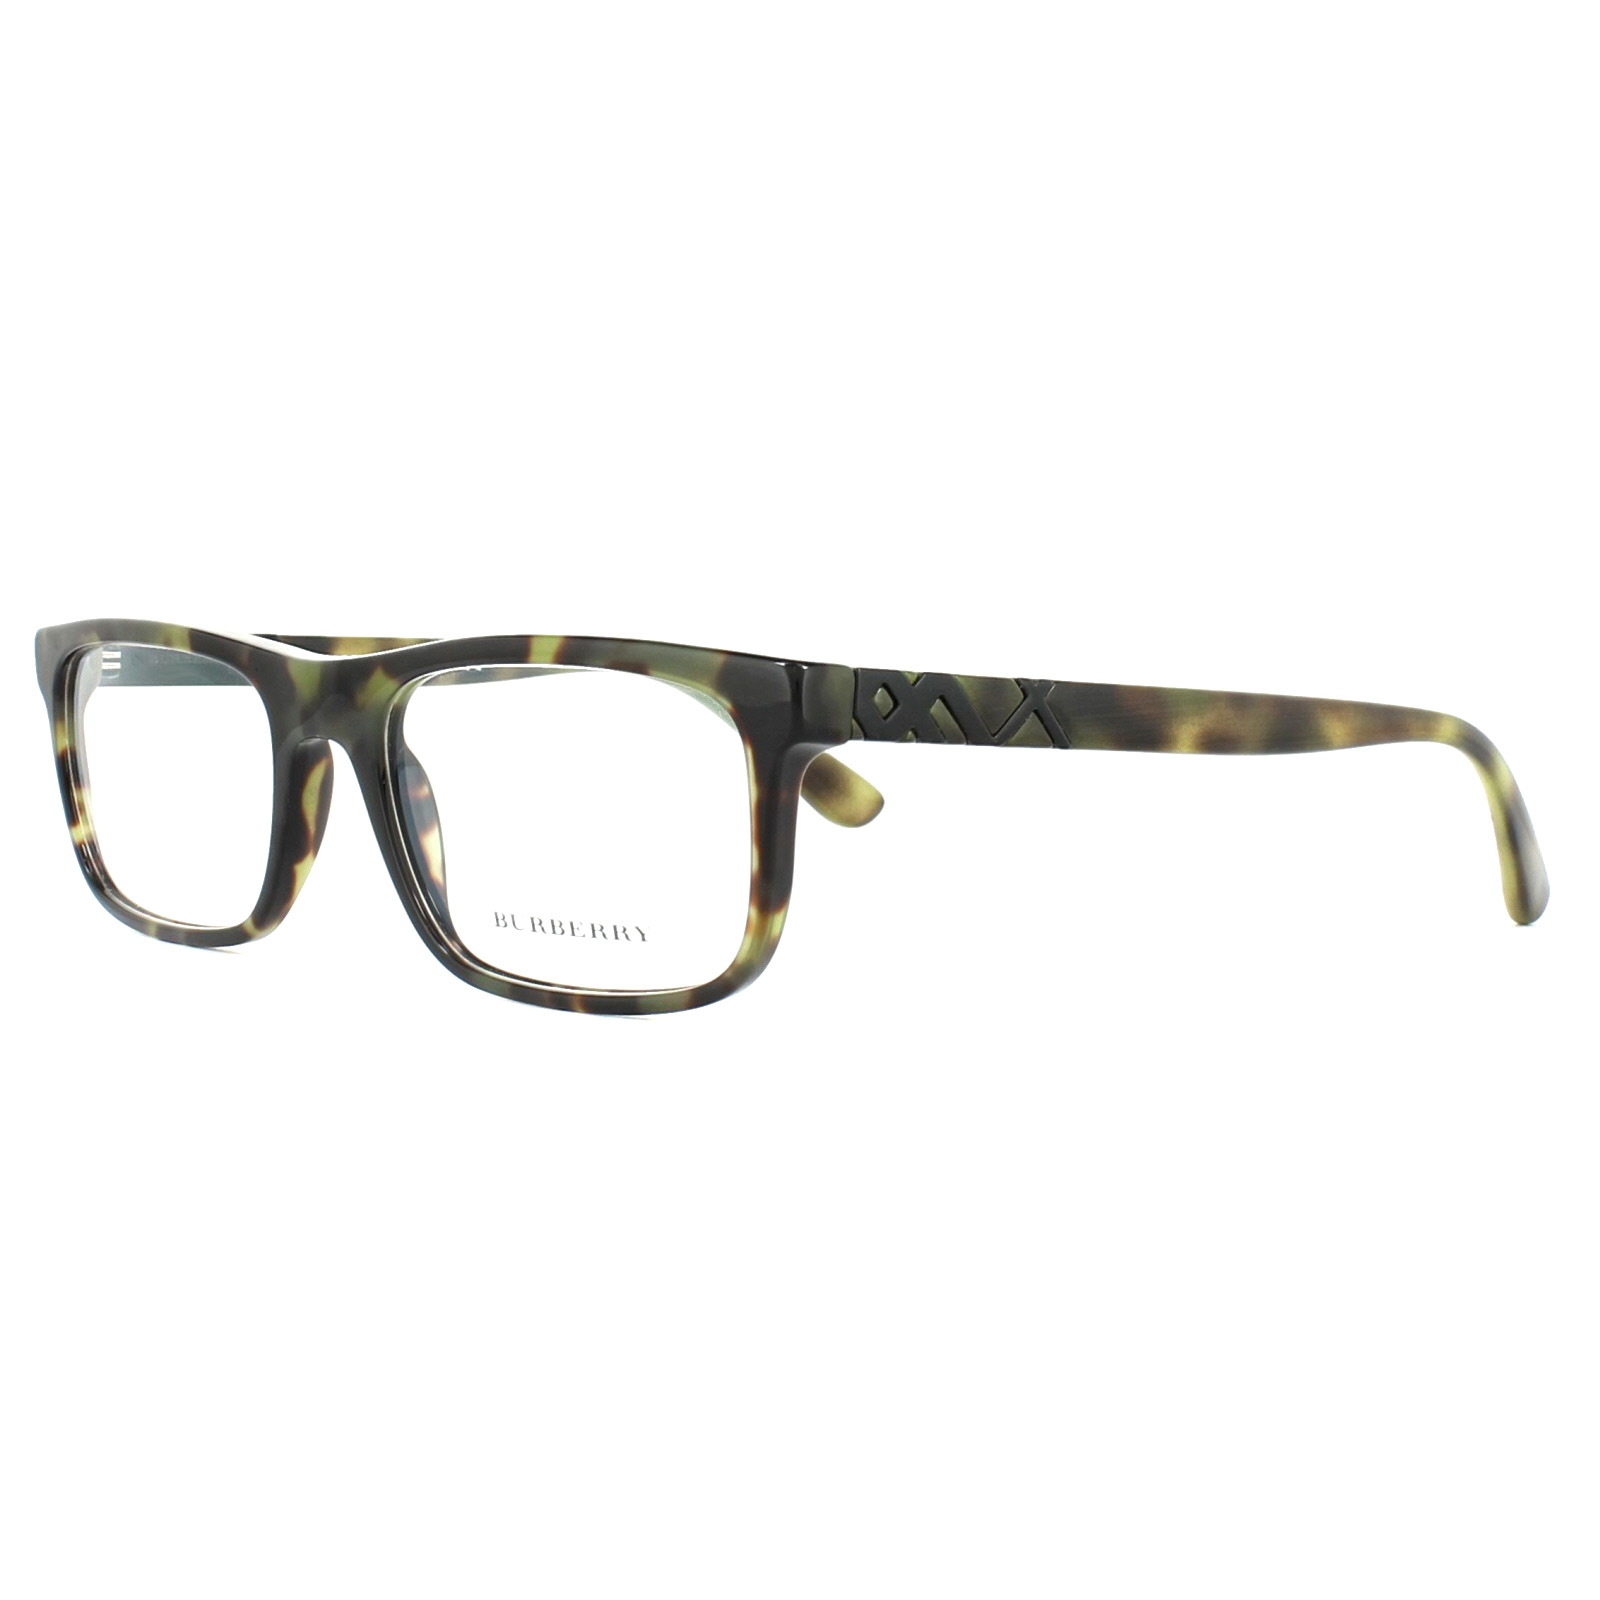 9a4e780df3c9 Sentinel Burberry Glasses Frames BE2240 3280 Green Havana 53mm Mens